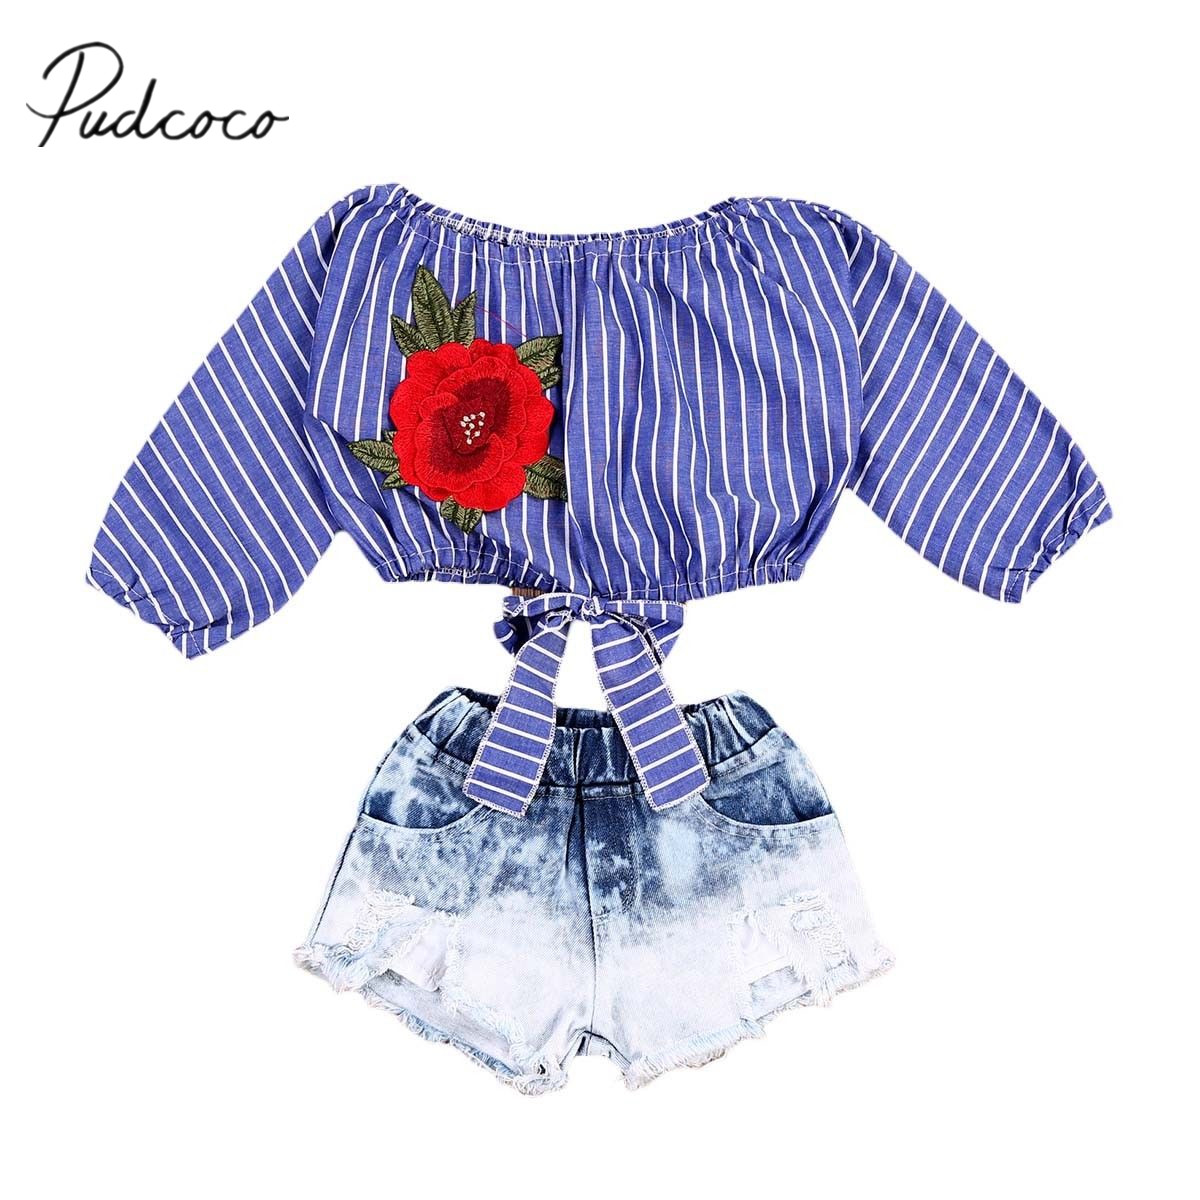 2017 Brand New Fashion Toddler Infant Kid Baby Girls Crop Tops T Shirts Denim Short Jeans Pants 2Pcs Fashion Sets Outfits 6M-5T easy guide to sewing tops and t shirts skirts and pants